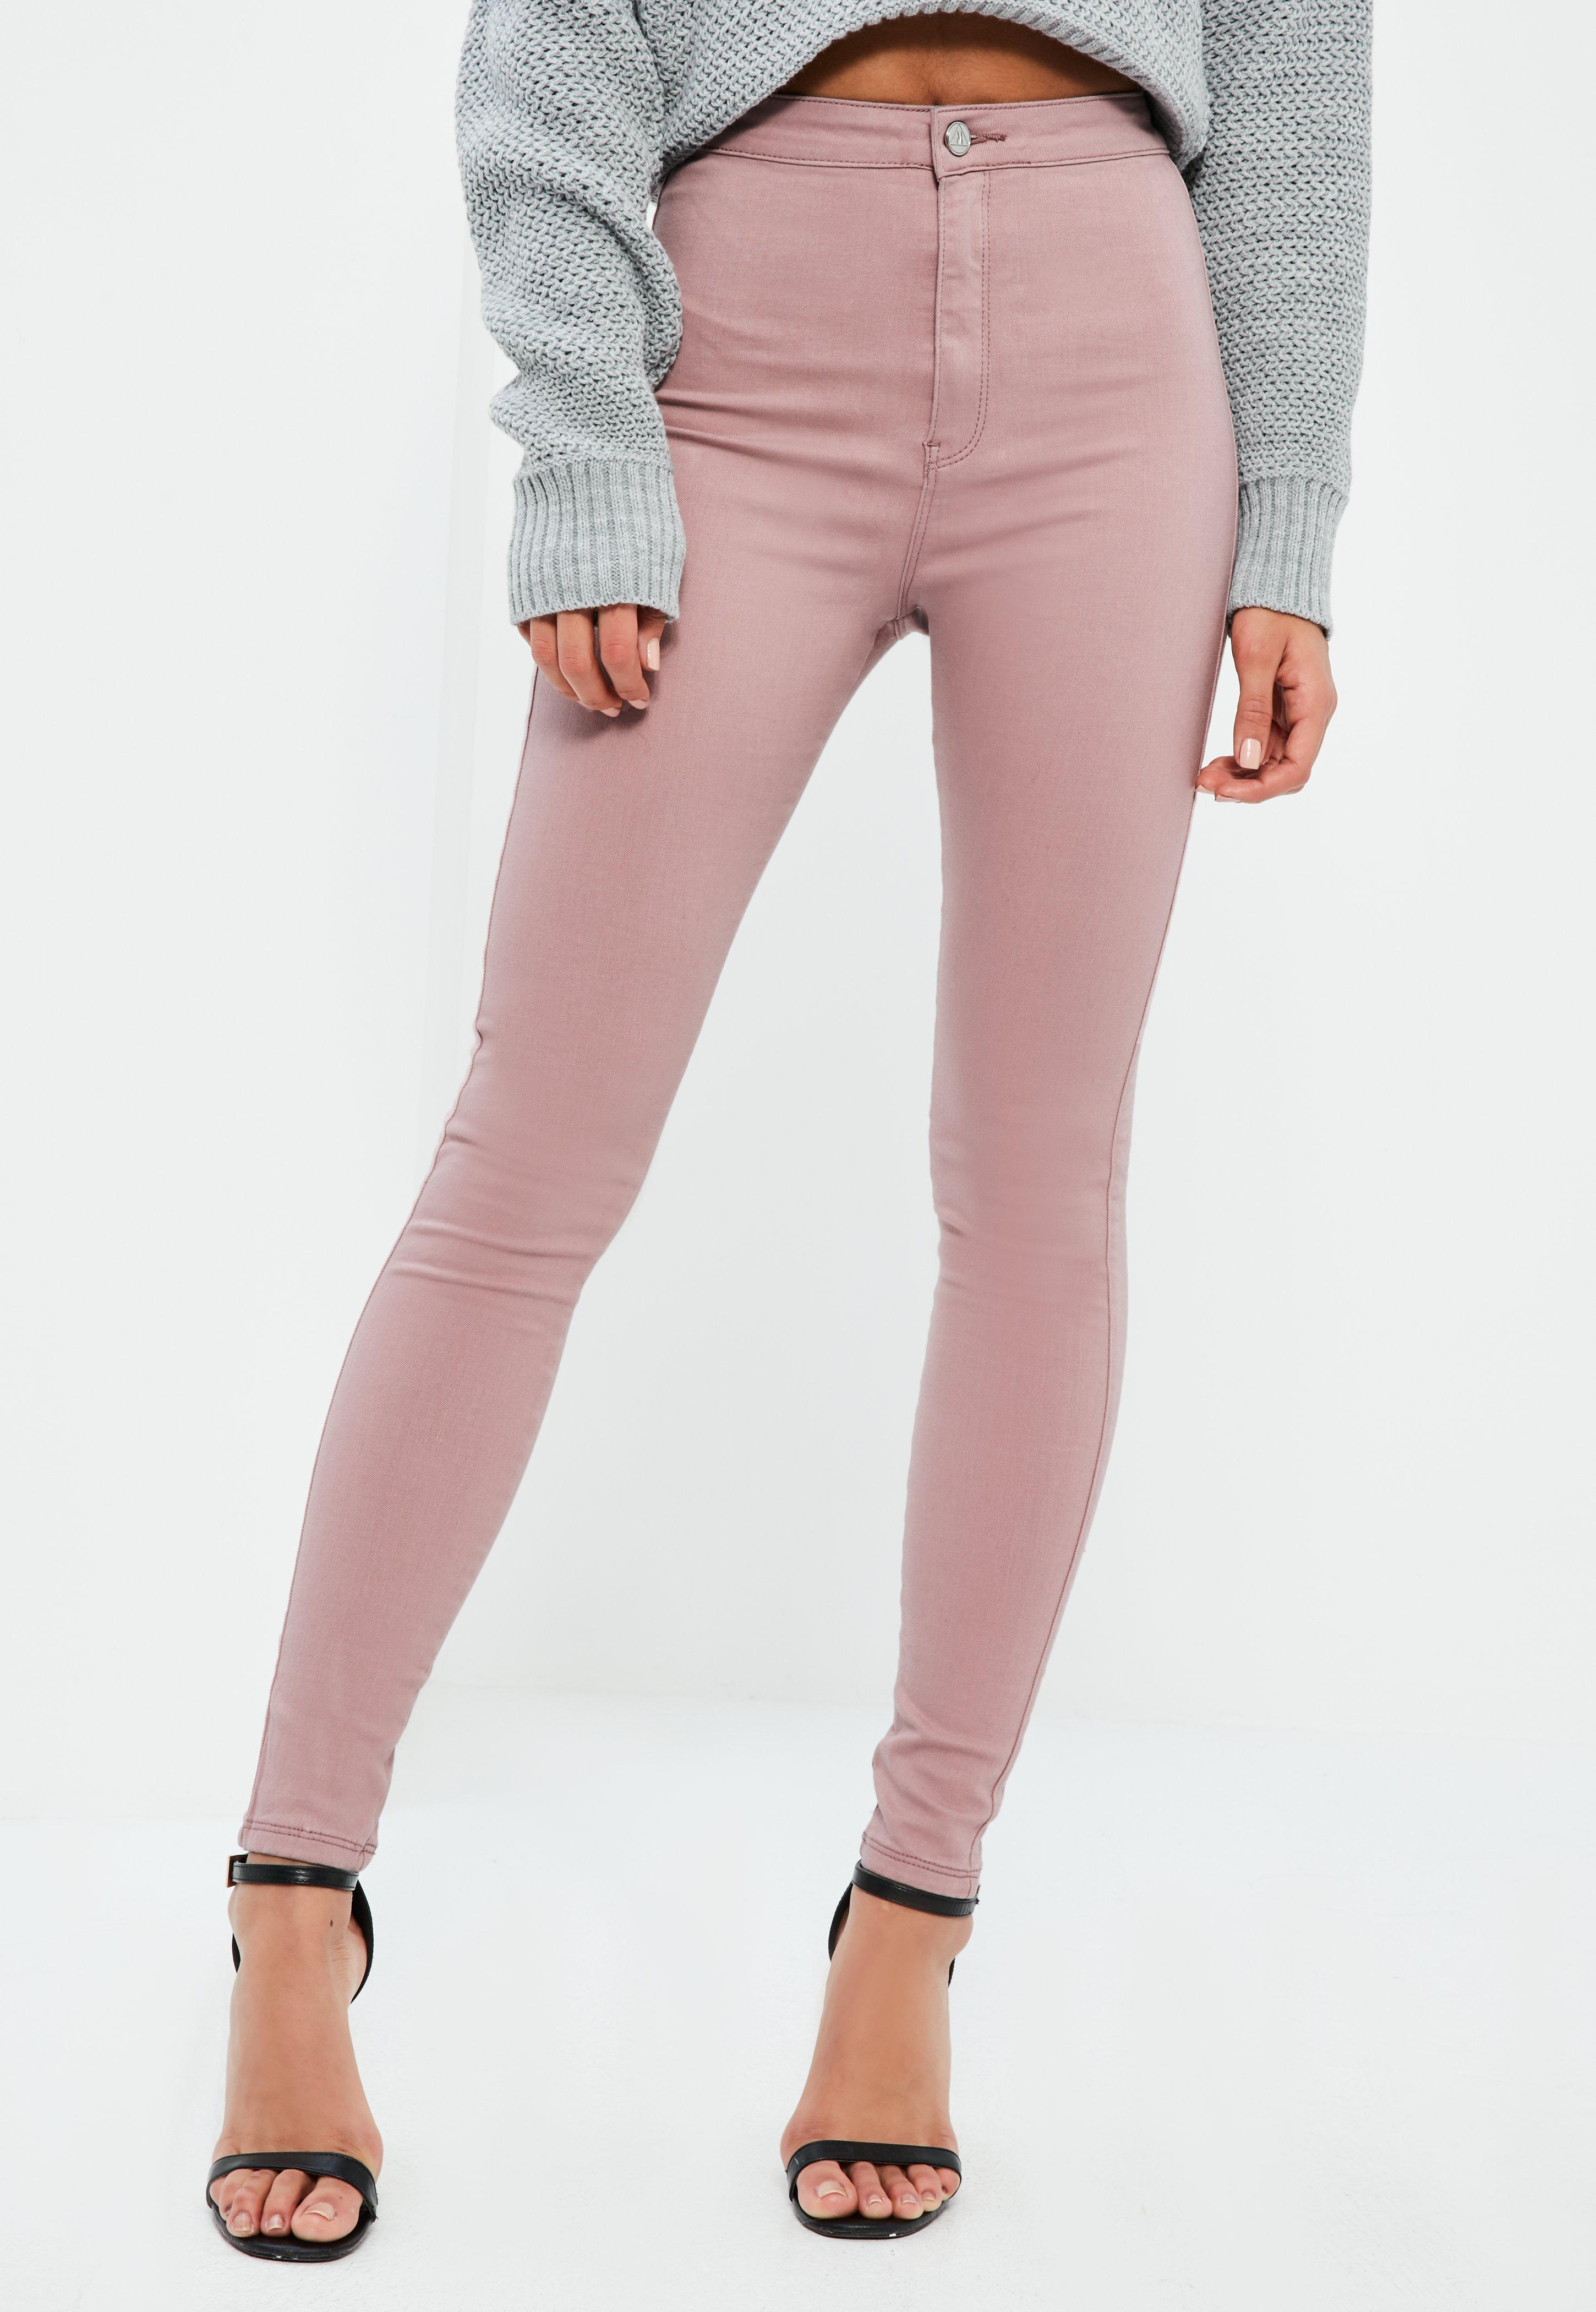 Missguided Pink Vice High Waisted Skinny Jeans In Pink Lyst